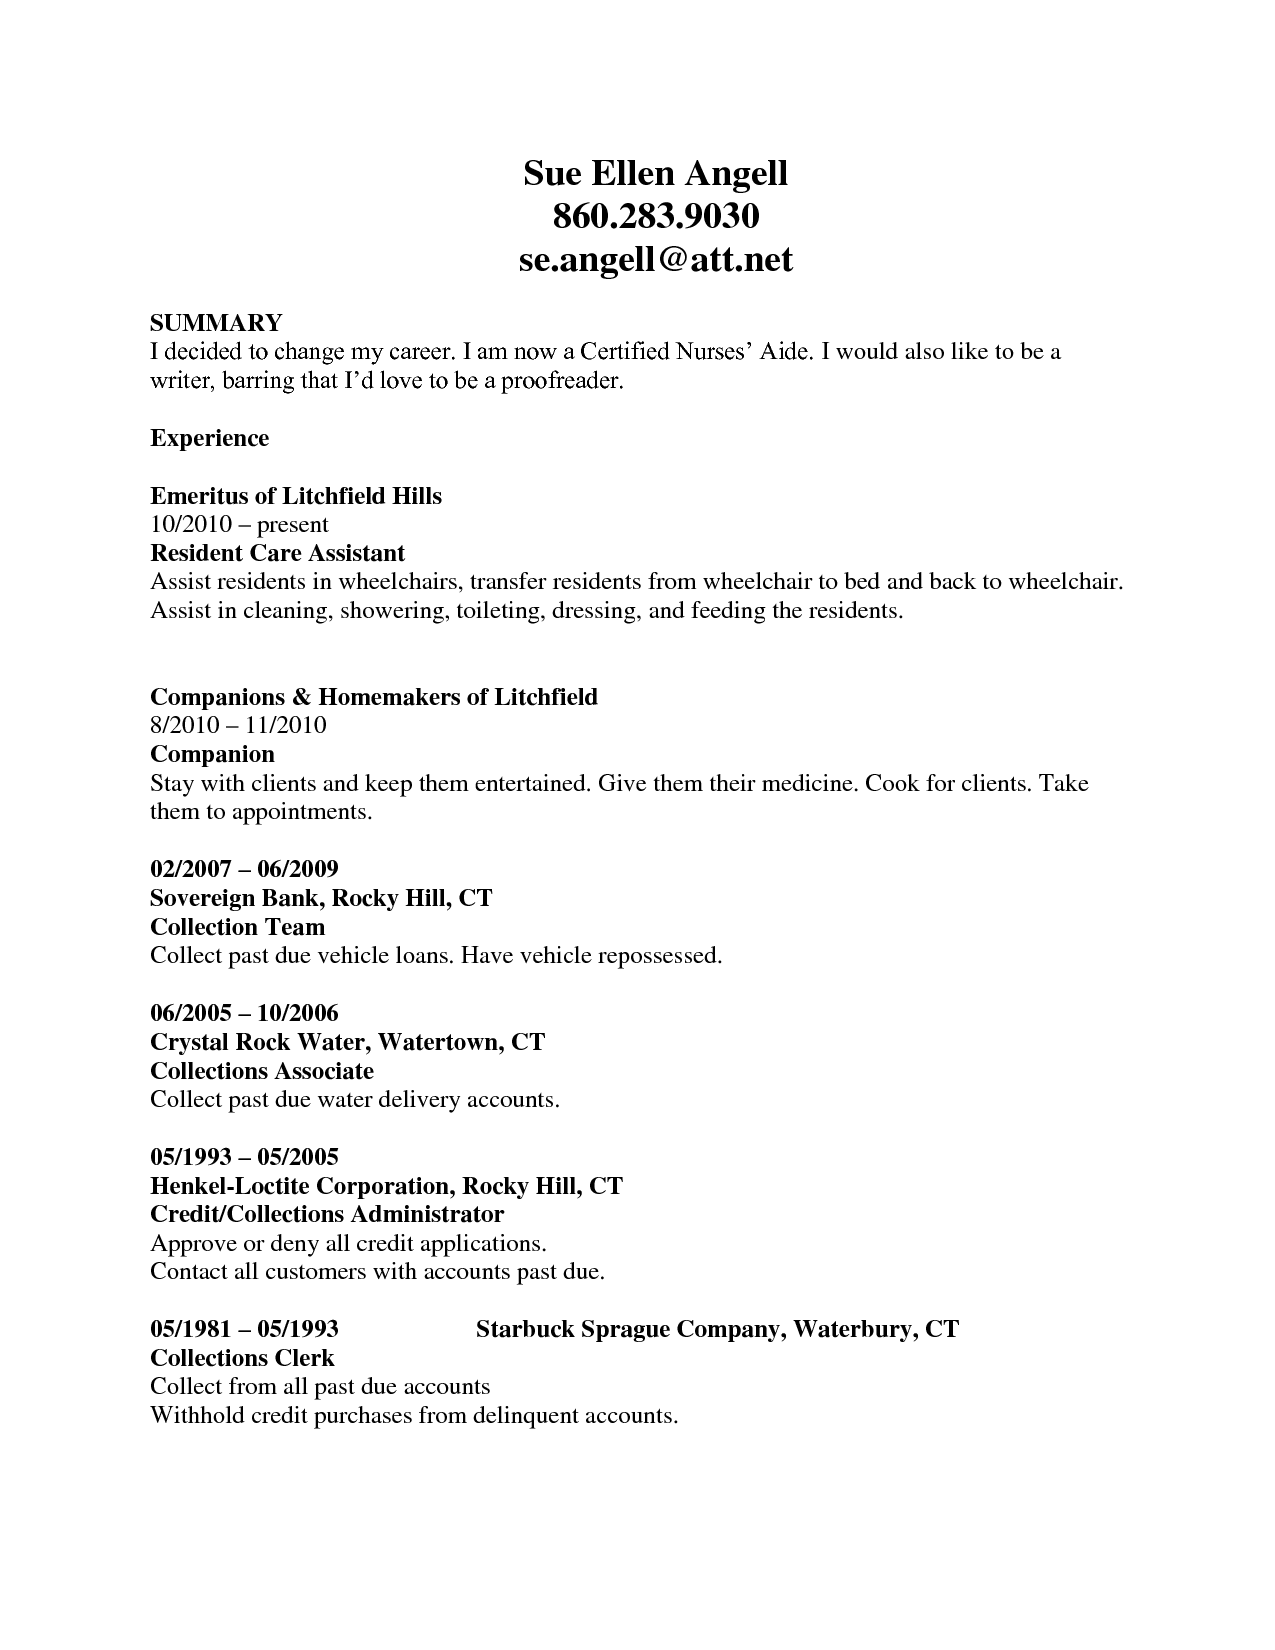 Nice CNA Resume Example: Click To Zoom With Cna Resume With No Experience